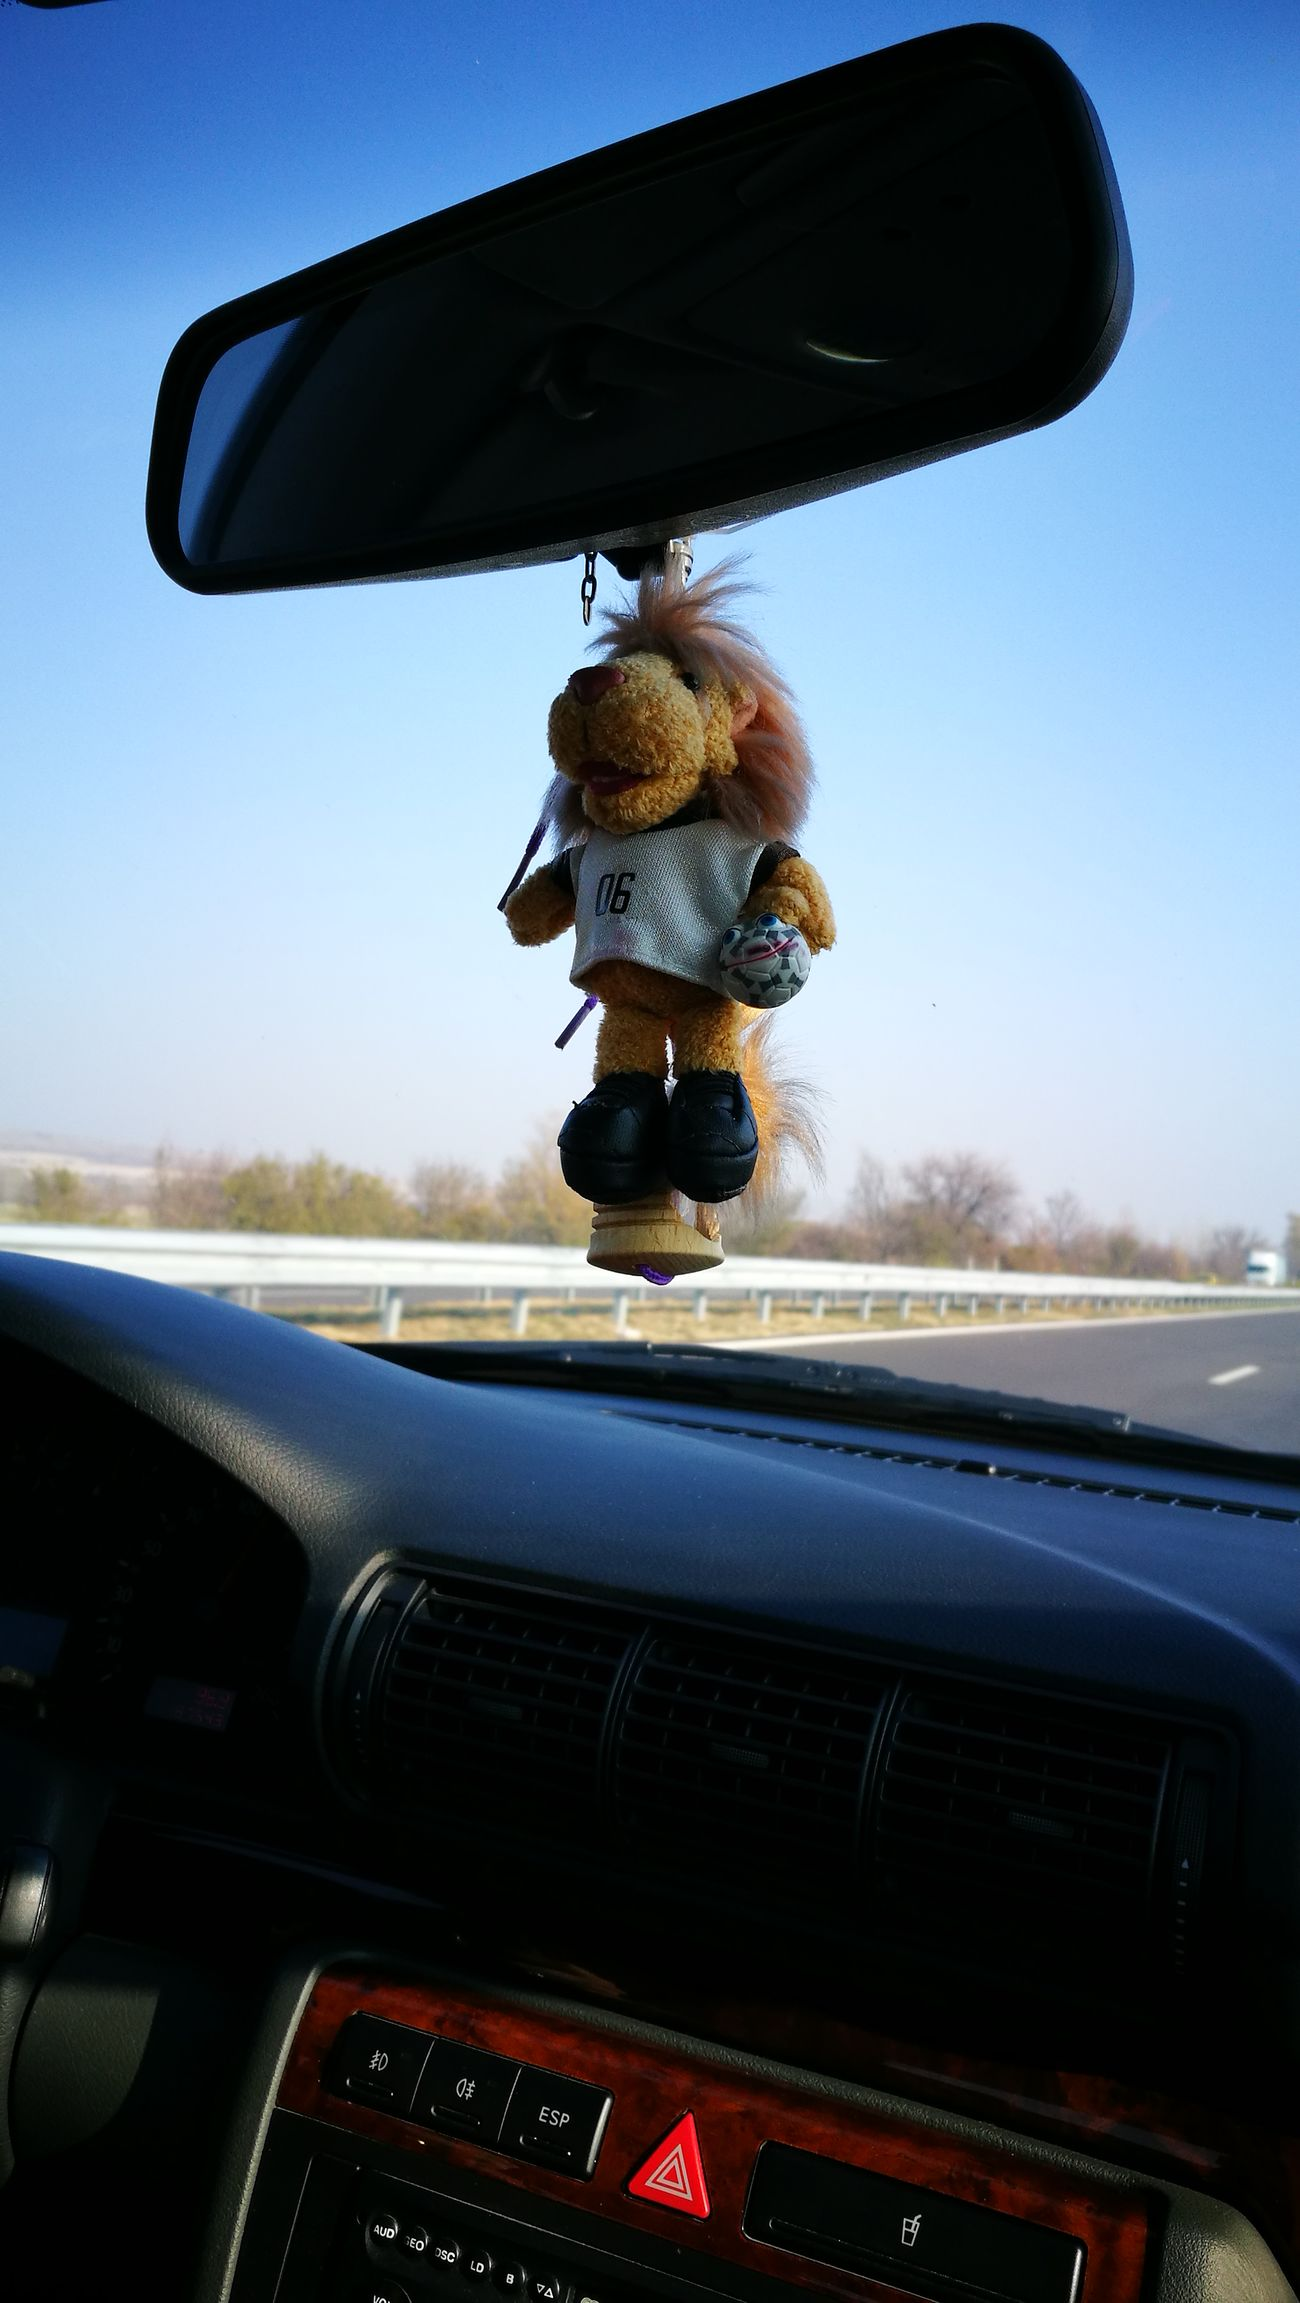 Huawei P9 Leica Funny Toys Toyphotography Taking Photos Traveling Enjoying Life Driving Around Drive